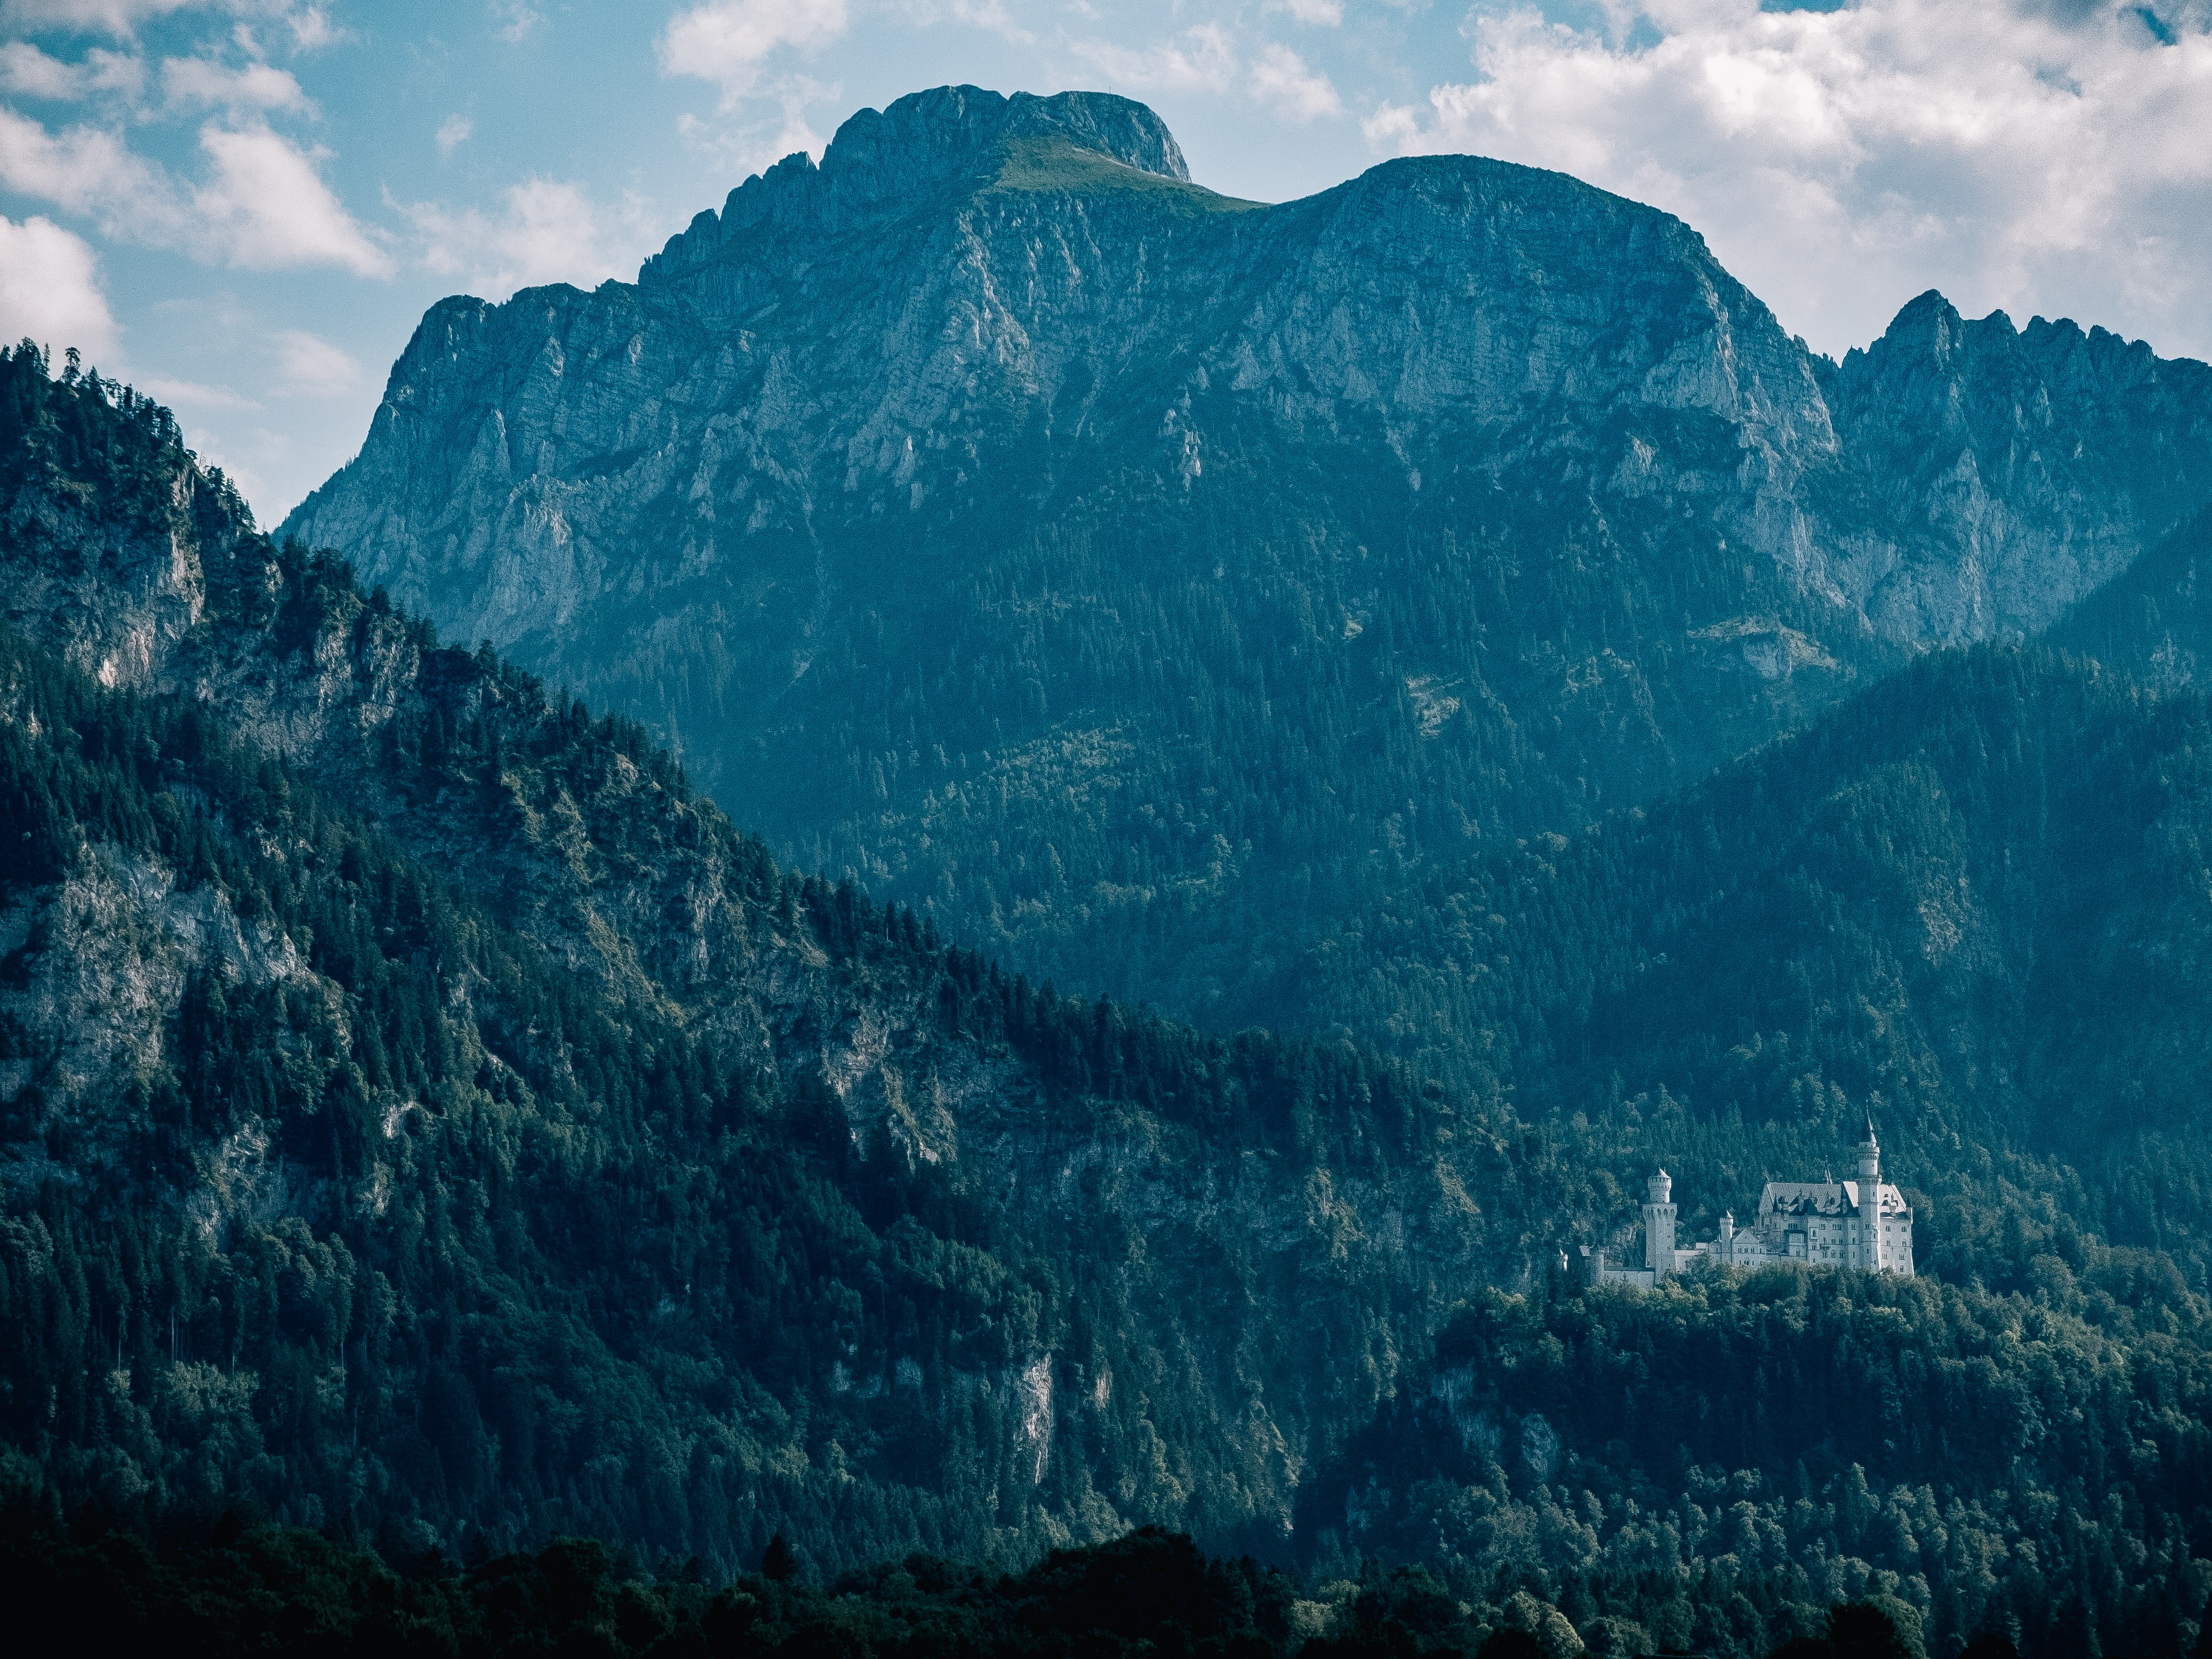 A scenic landscape with a rugged mountain ridge towering over the Neuschwanstein Castle